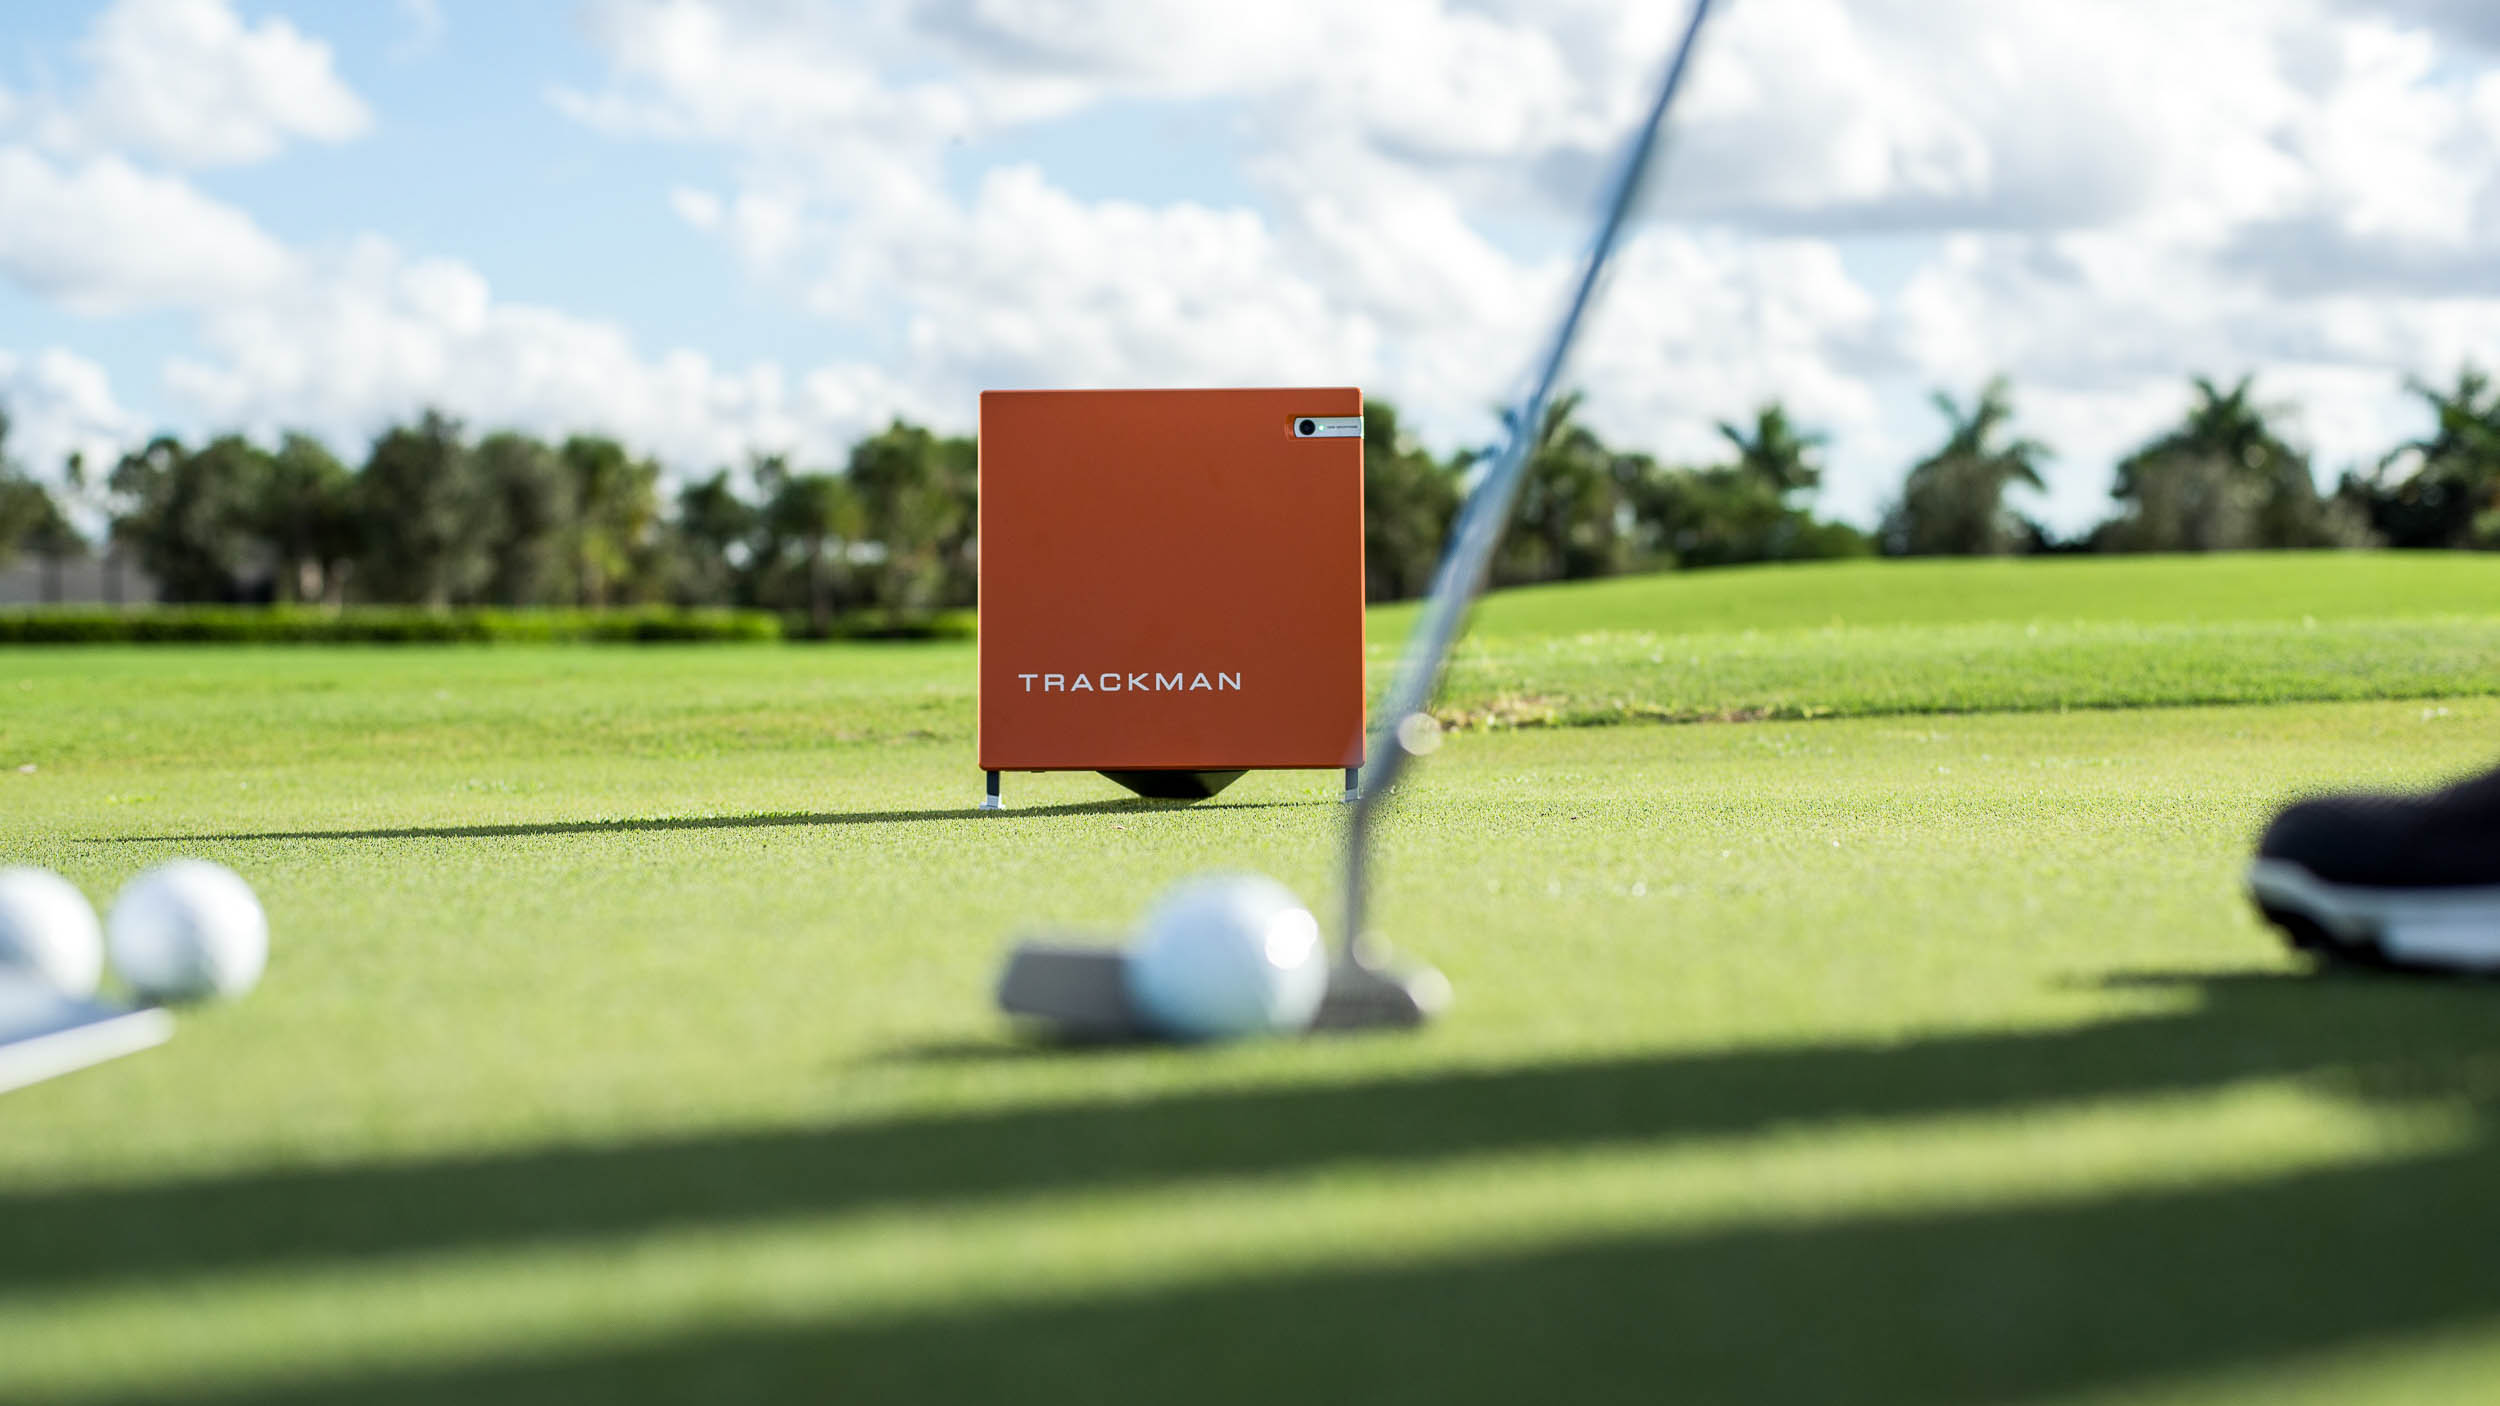 Trackman technology monitors a golf putt